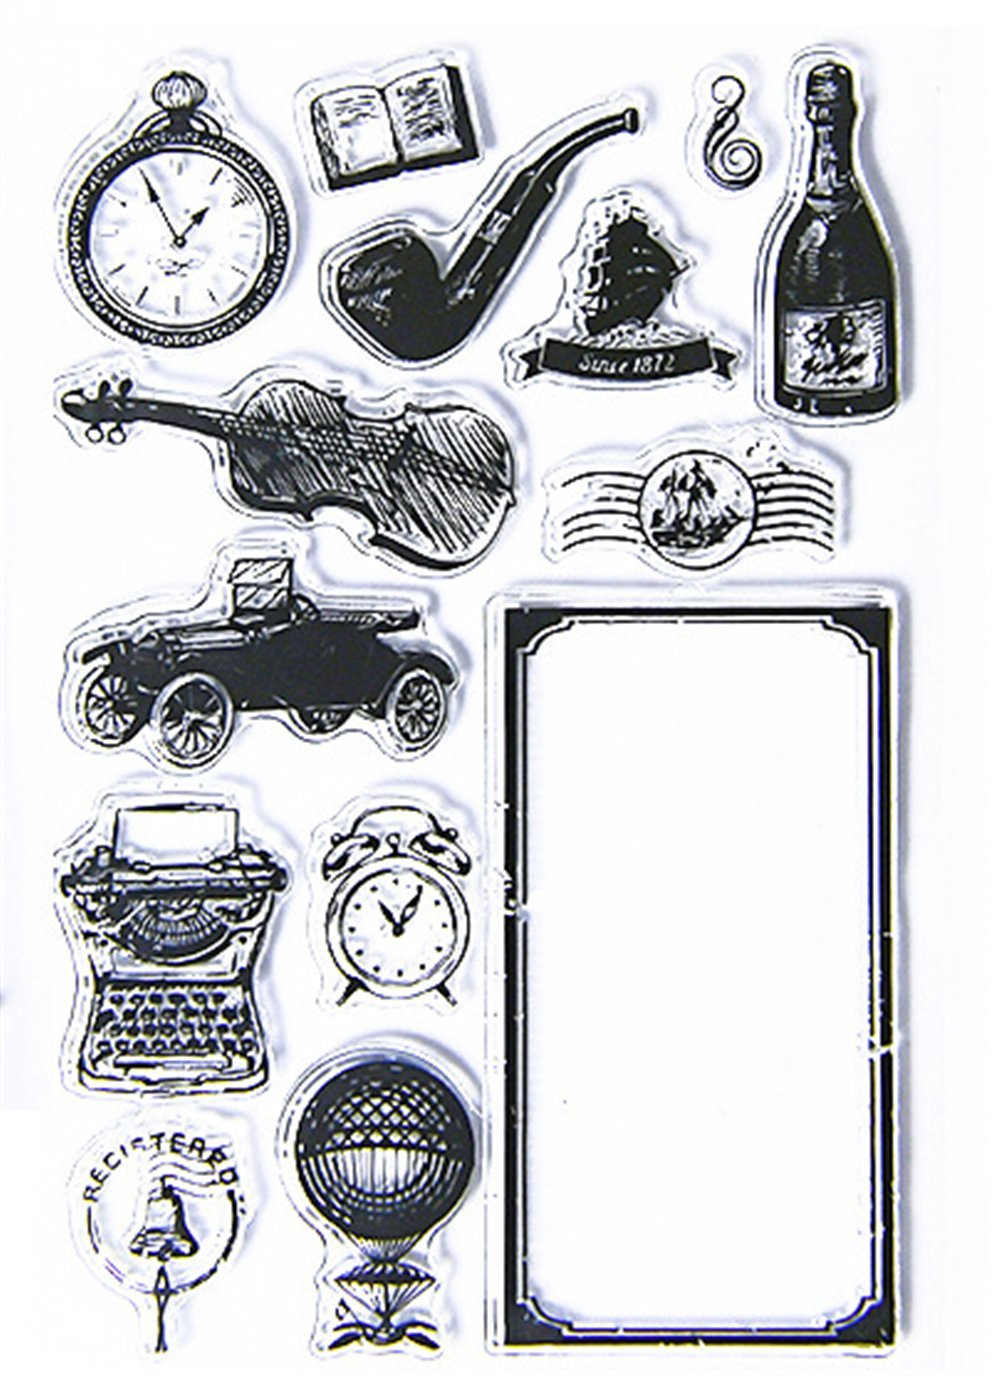 Layhome Stamp Transparent Handmade Cards Scrapbooking 10x15cm (#61)